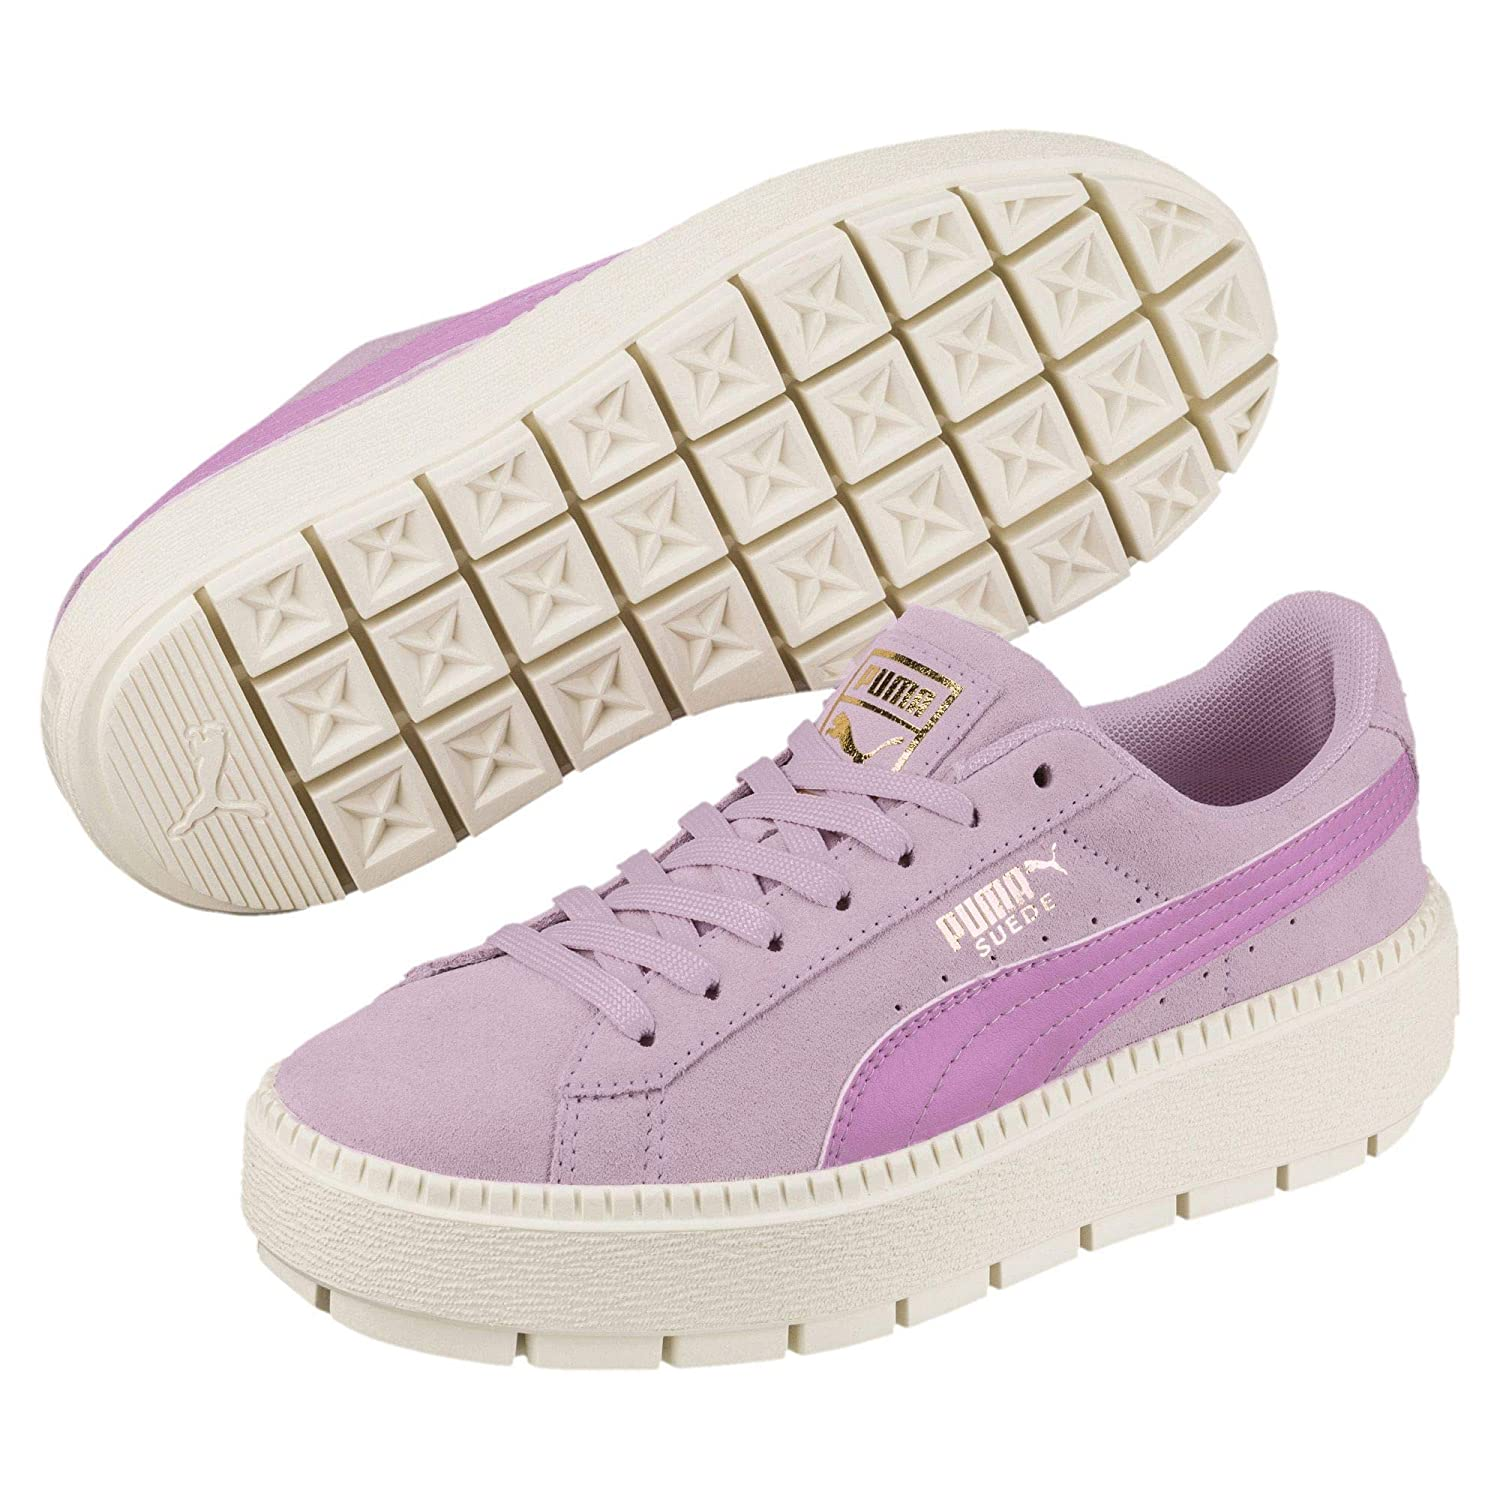 size 40 be5cd 98f34 Puma Suede Platform Trace Jr 36682602, Trainers Pink: Amazon ...